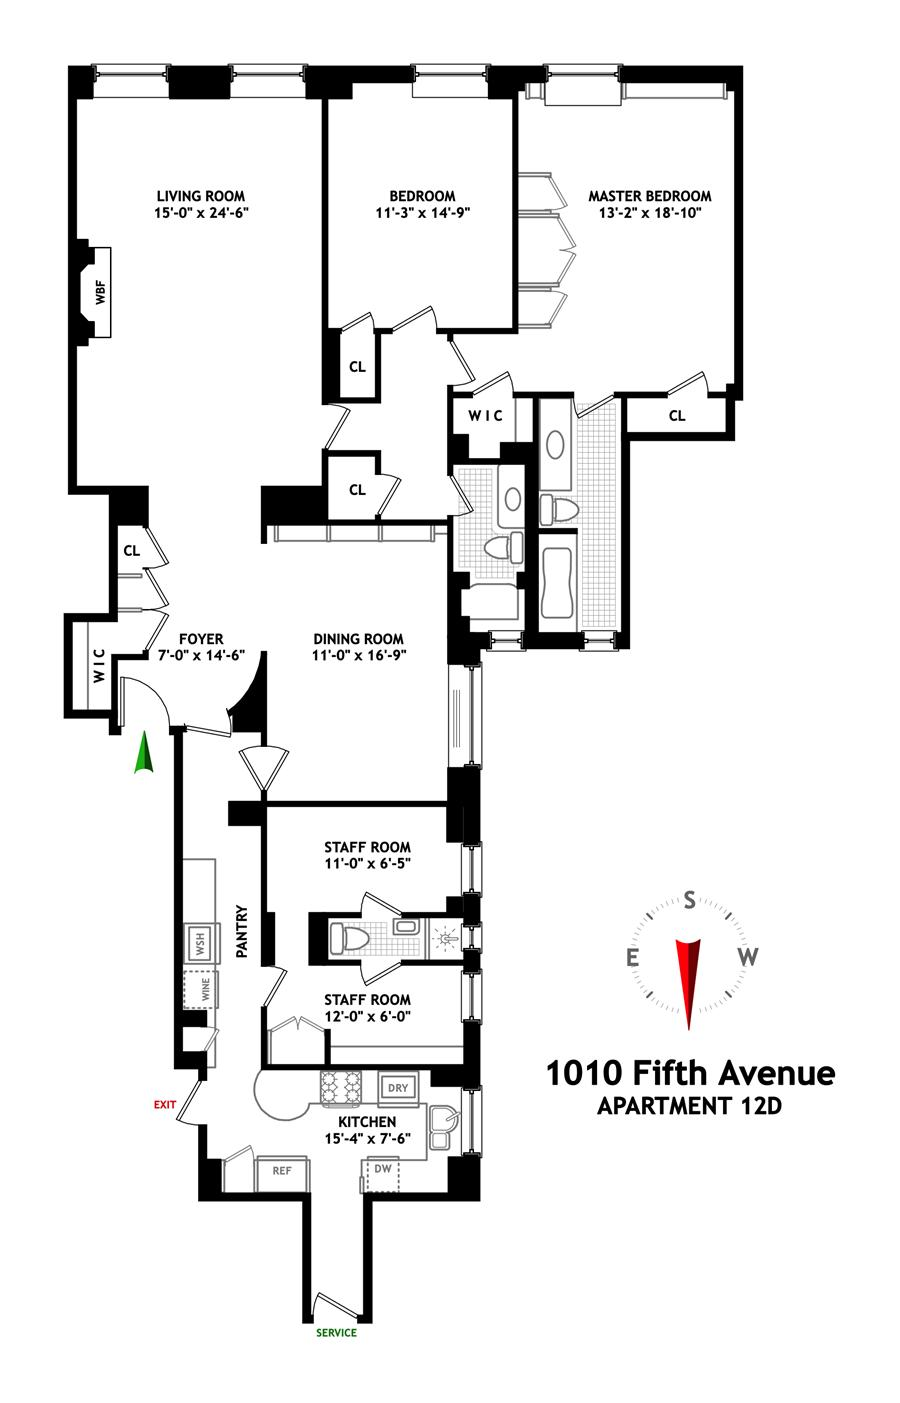 Floor plan of 1010 TENANTS CORP, 1010 Fifth Avenue, 12D - Upper East Side, New York